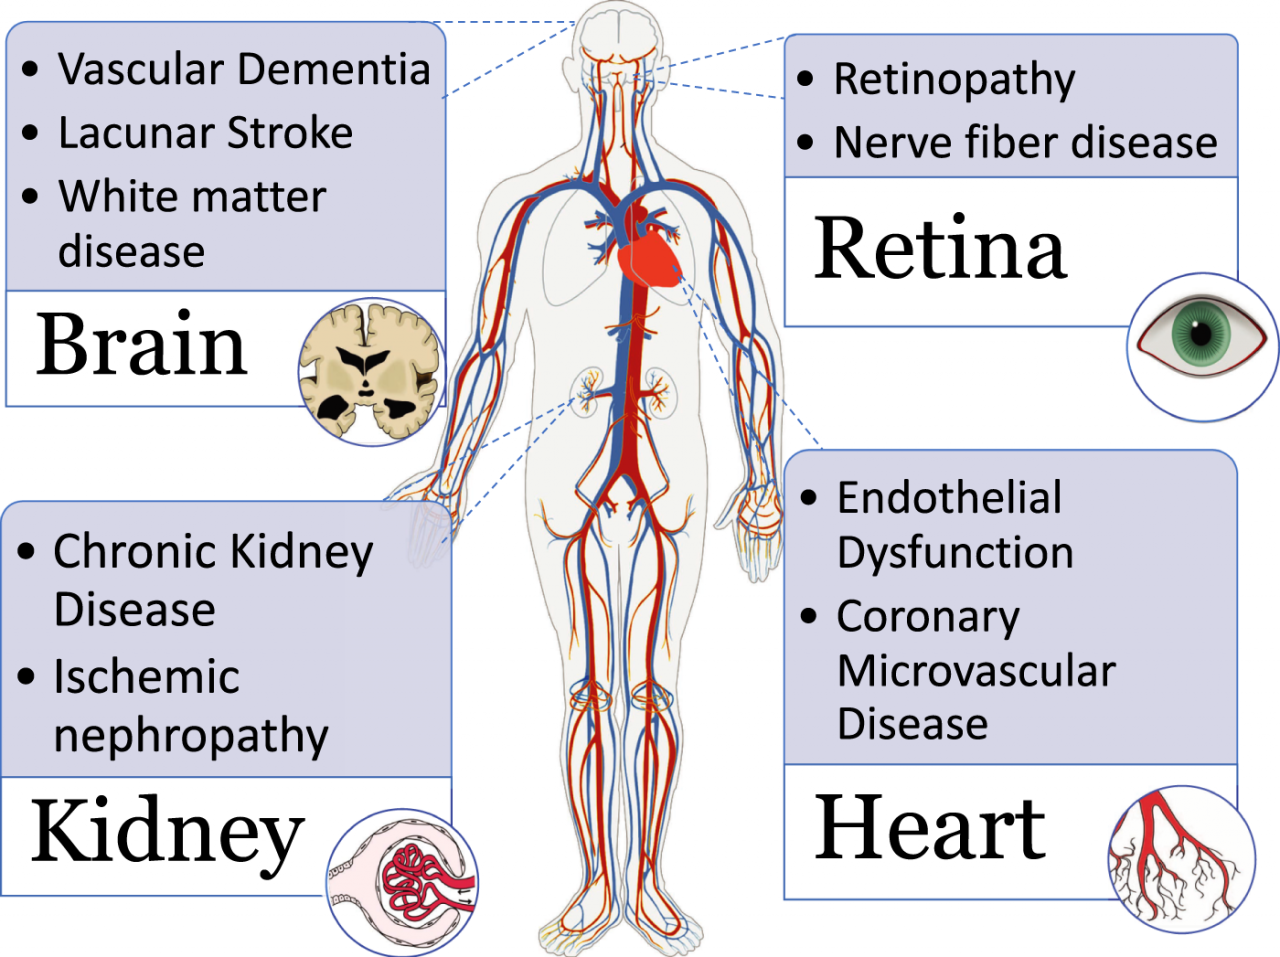 Small‐Vessel Disease in the Heart and Brain: Current Knowledge, Unmet  Therapeutic Need, and Future Directions | Journal of the American Heart  Association